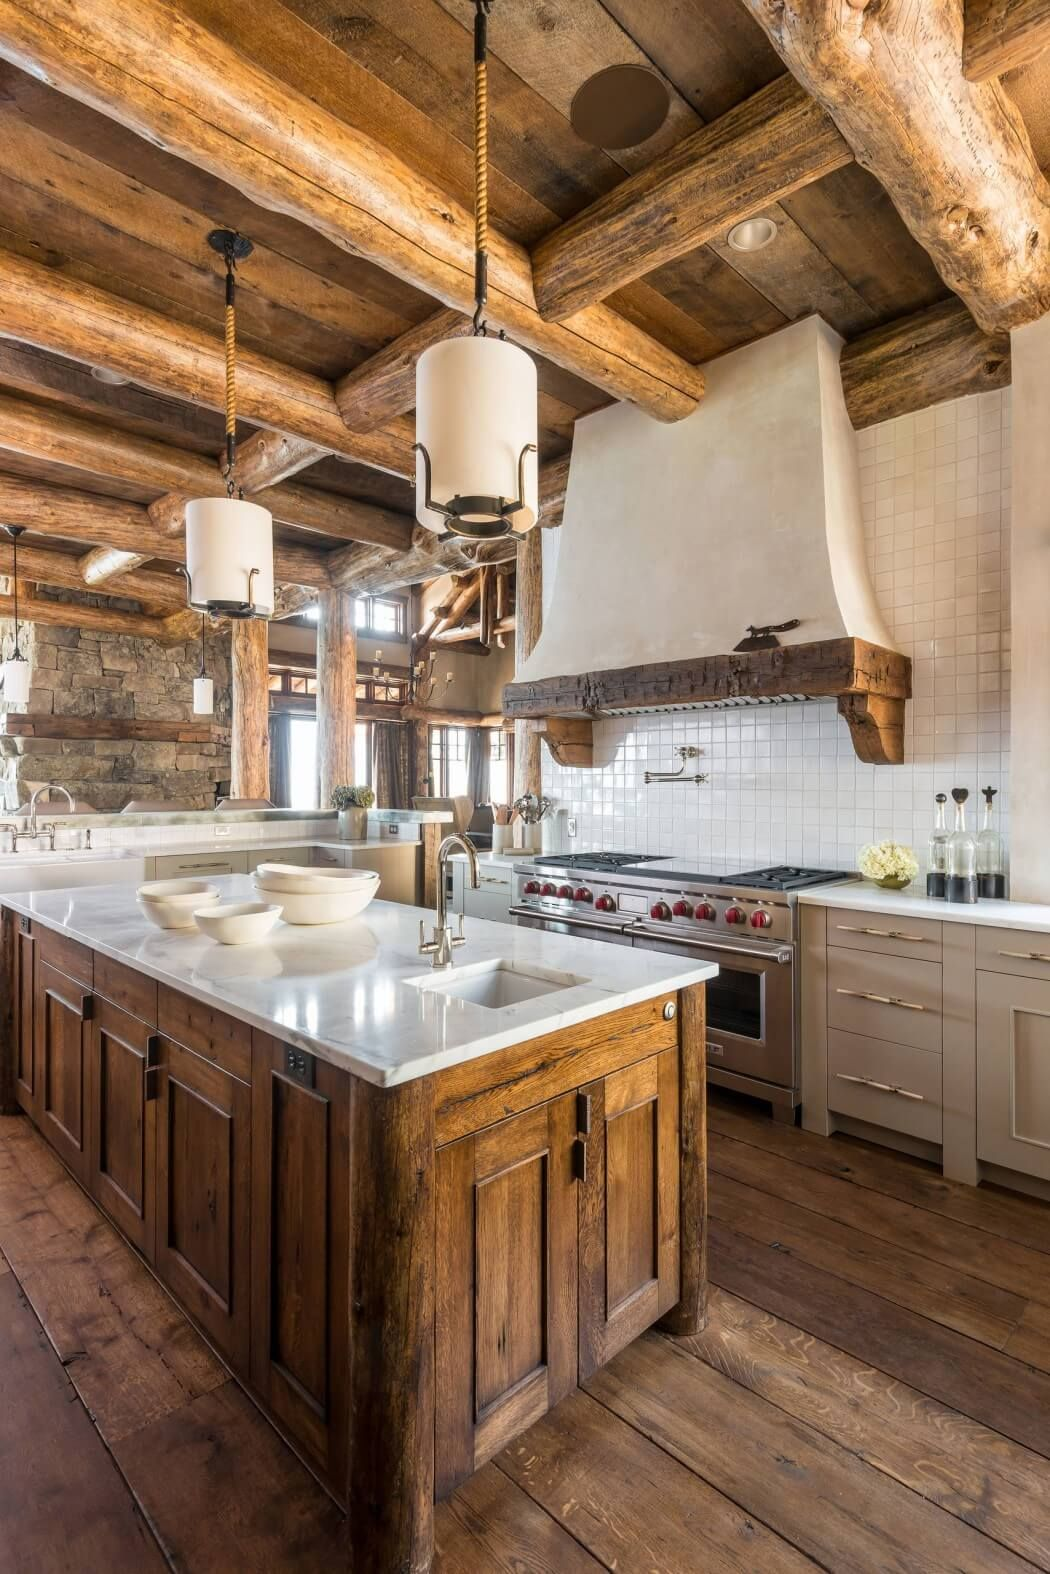 Cabin Kitchen Design Creative cedar viewpearson design group | homeadore | | mountain modern